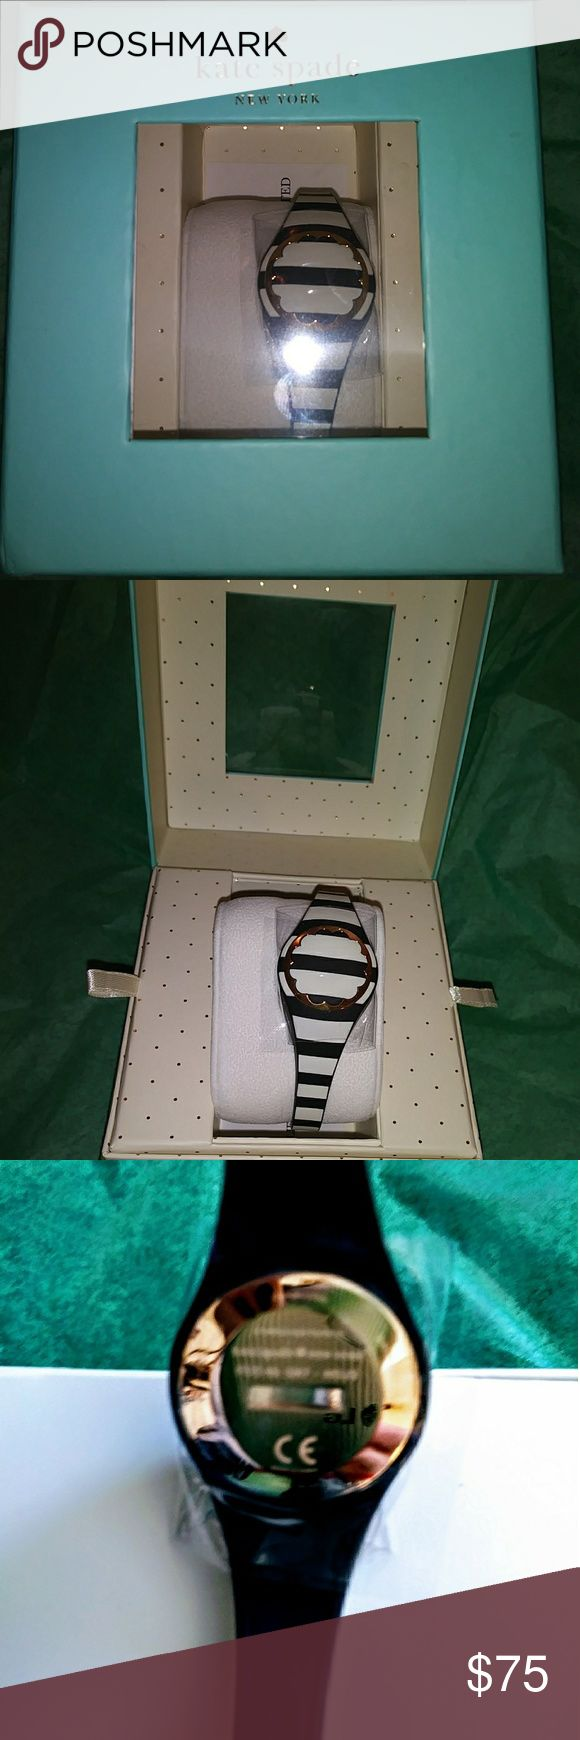 KATE SPADE ACTIVITY TRACKER NEW IN BOX Kate Spade Acivity Tracker  Compatible with Android 4.4 or higher .iphone 5 and above  Integrates with google fit and health app  Bluetooth smart kate spade Accessories